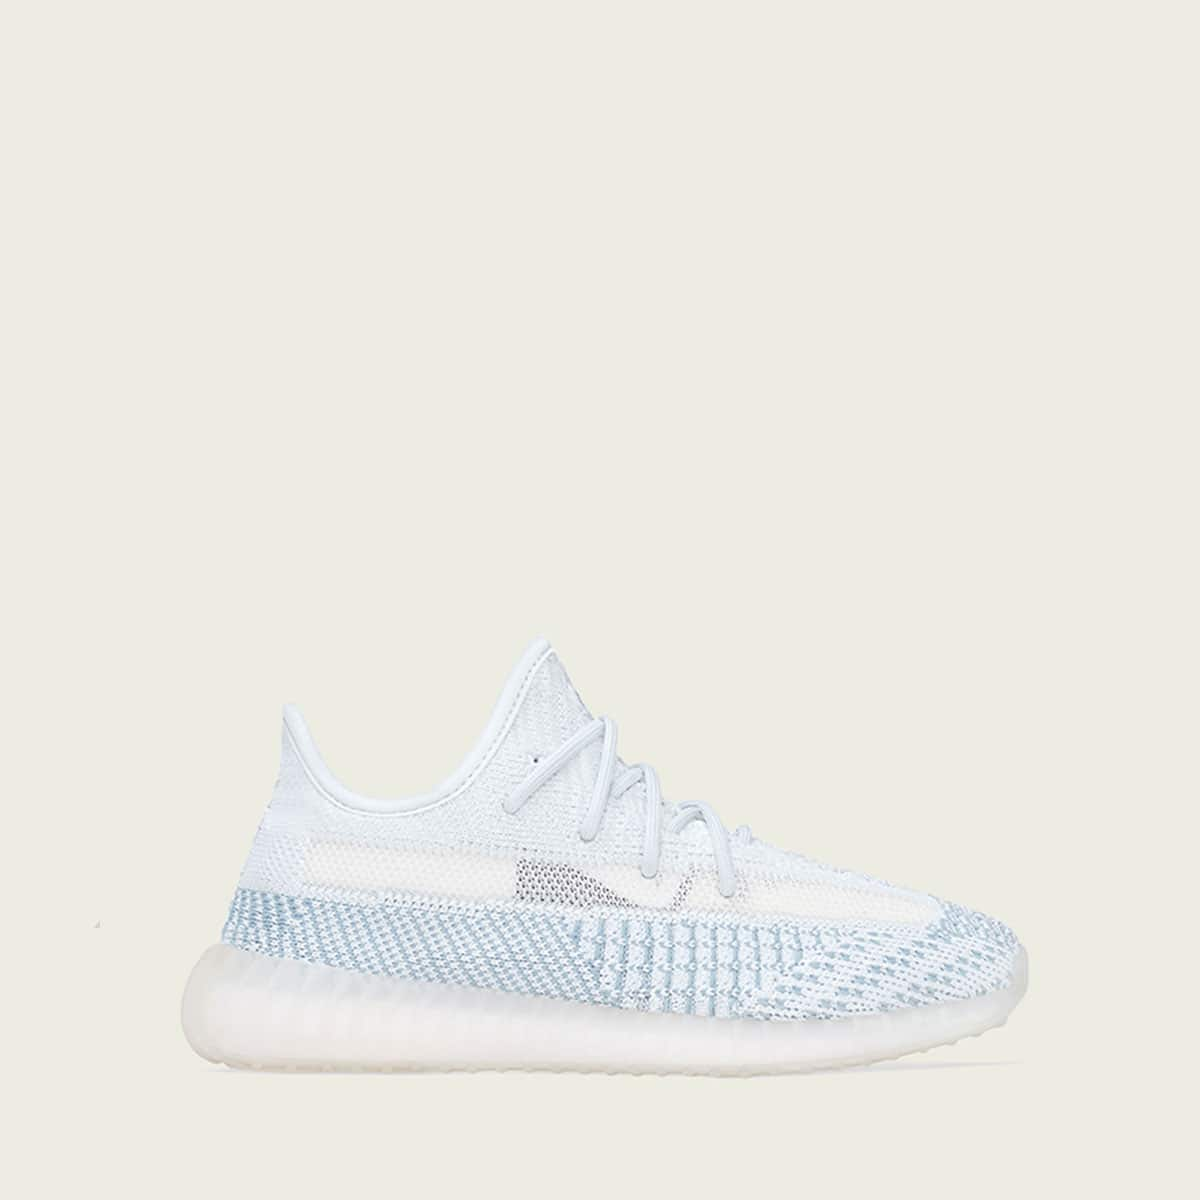 "adidas YEEZY_BOOST 350 V2""CLOUD WHITE""KIDS CLOUD WHITE/CLOUD WHITE/CLOUD WHITE 19FW-S_photo_large"